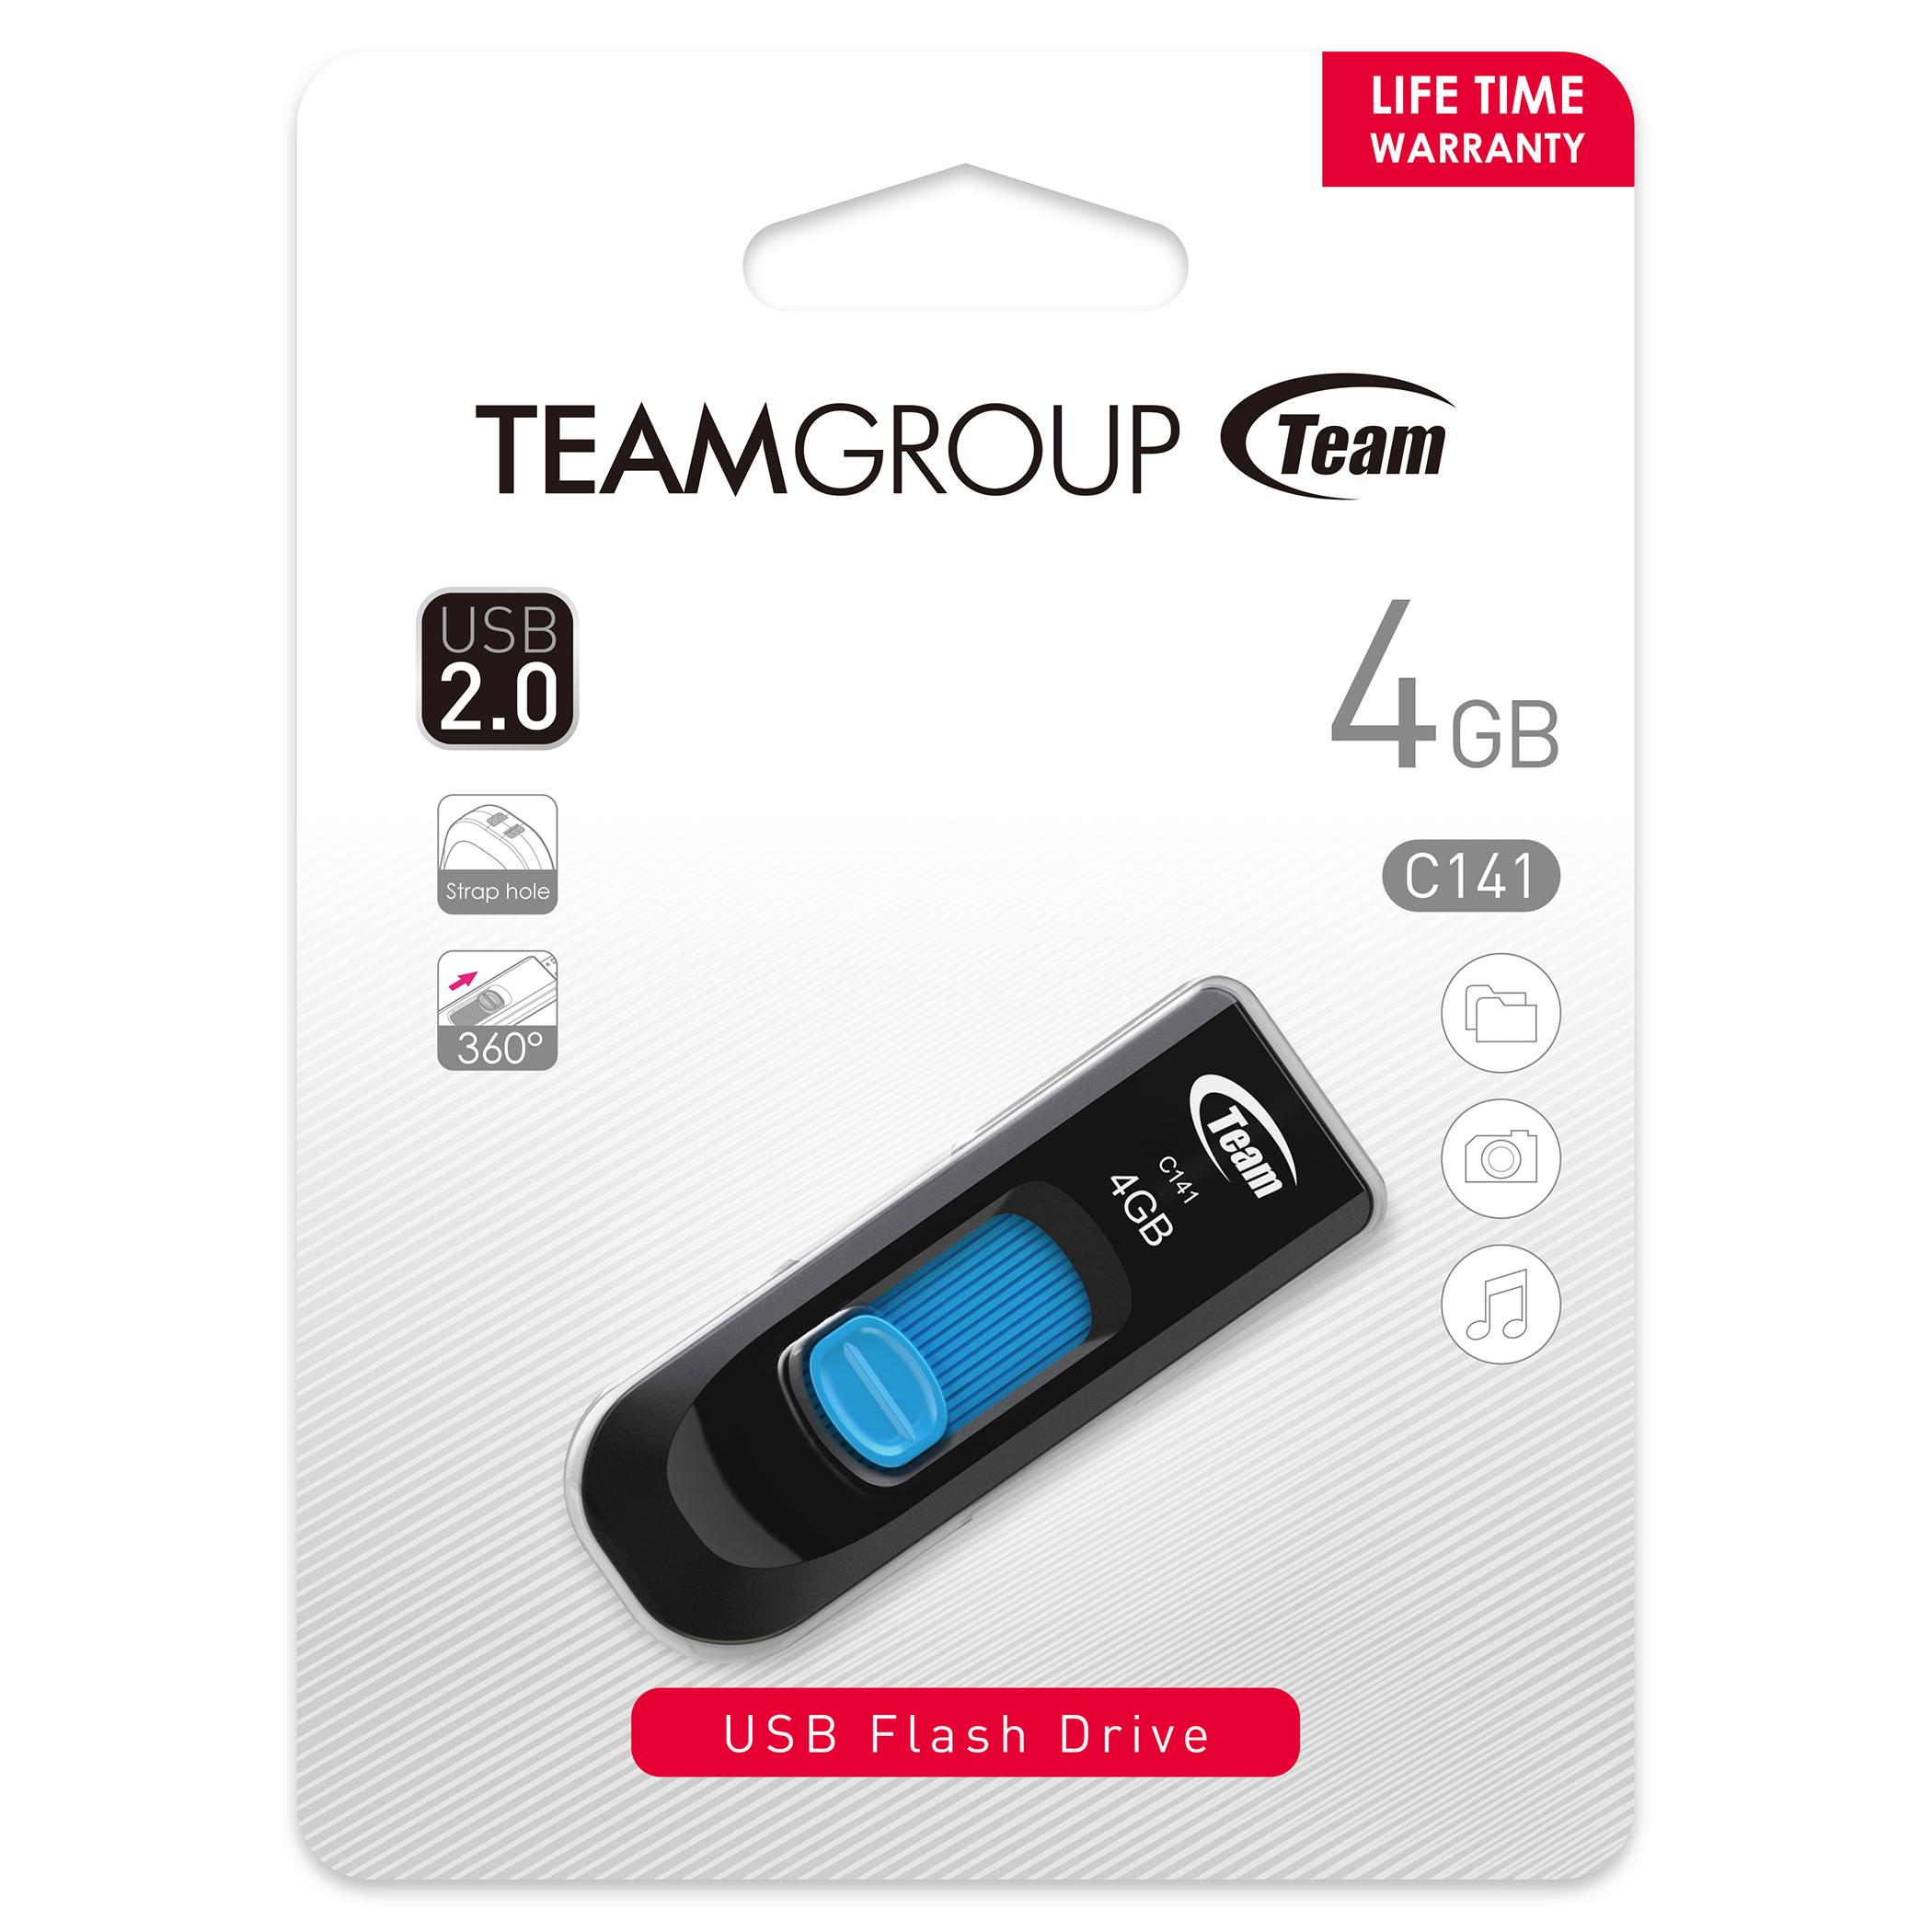 USB памет Team Group C141, 4GB, USB 2.0, Син